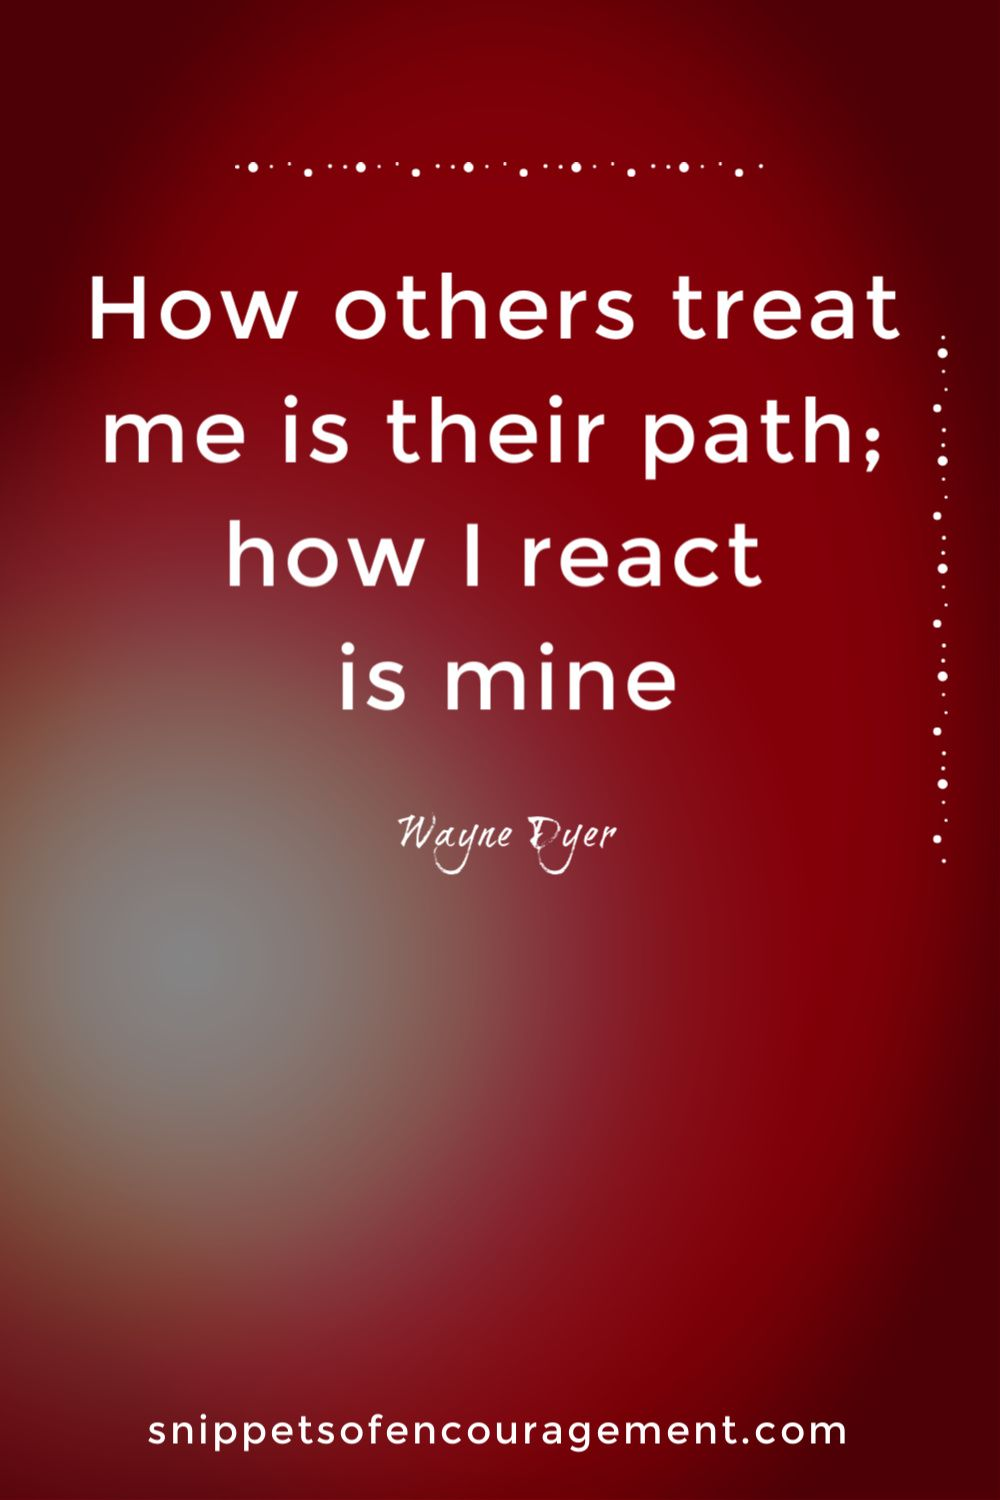 Get Inspired With These Awesome Wayne Dyer Quotes To Live By